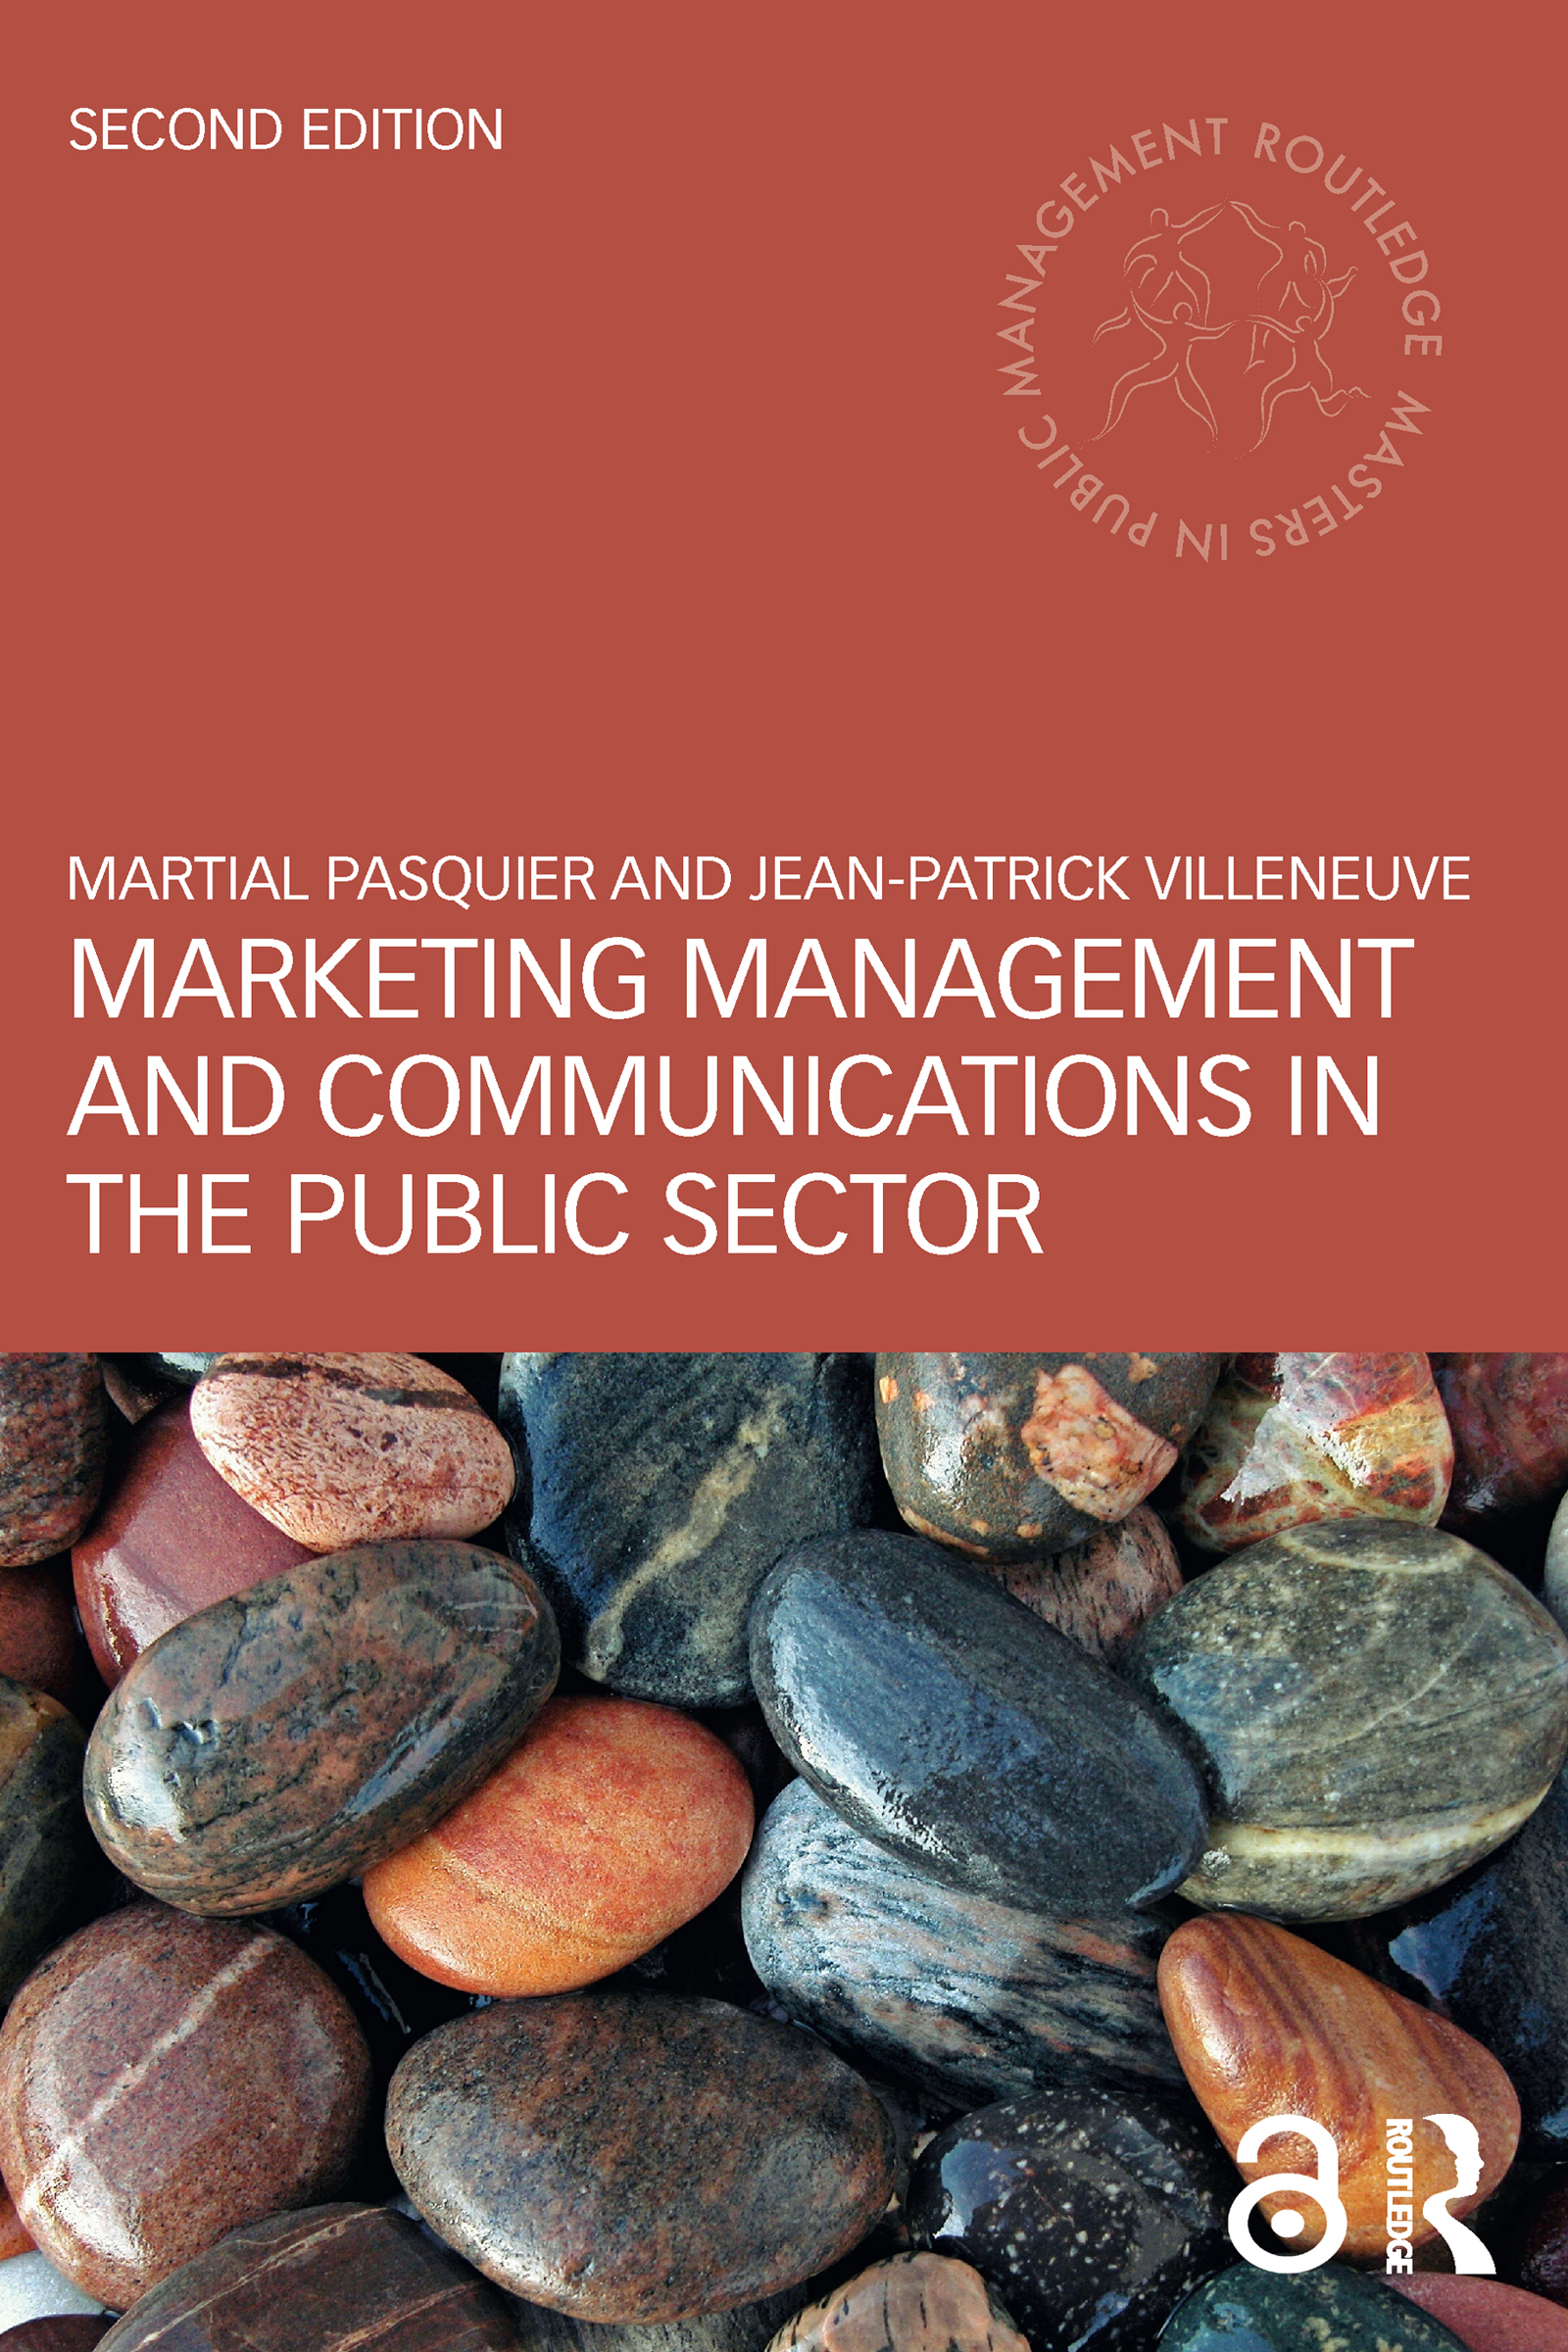 Download Ebook Marketing Management and Communications in the Public Sector (2nd ed.) by Martial Pasquier Pdf